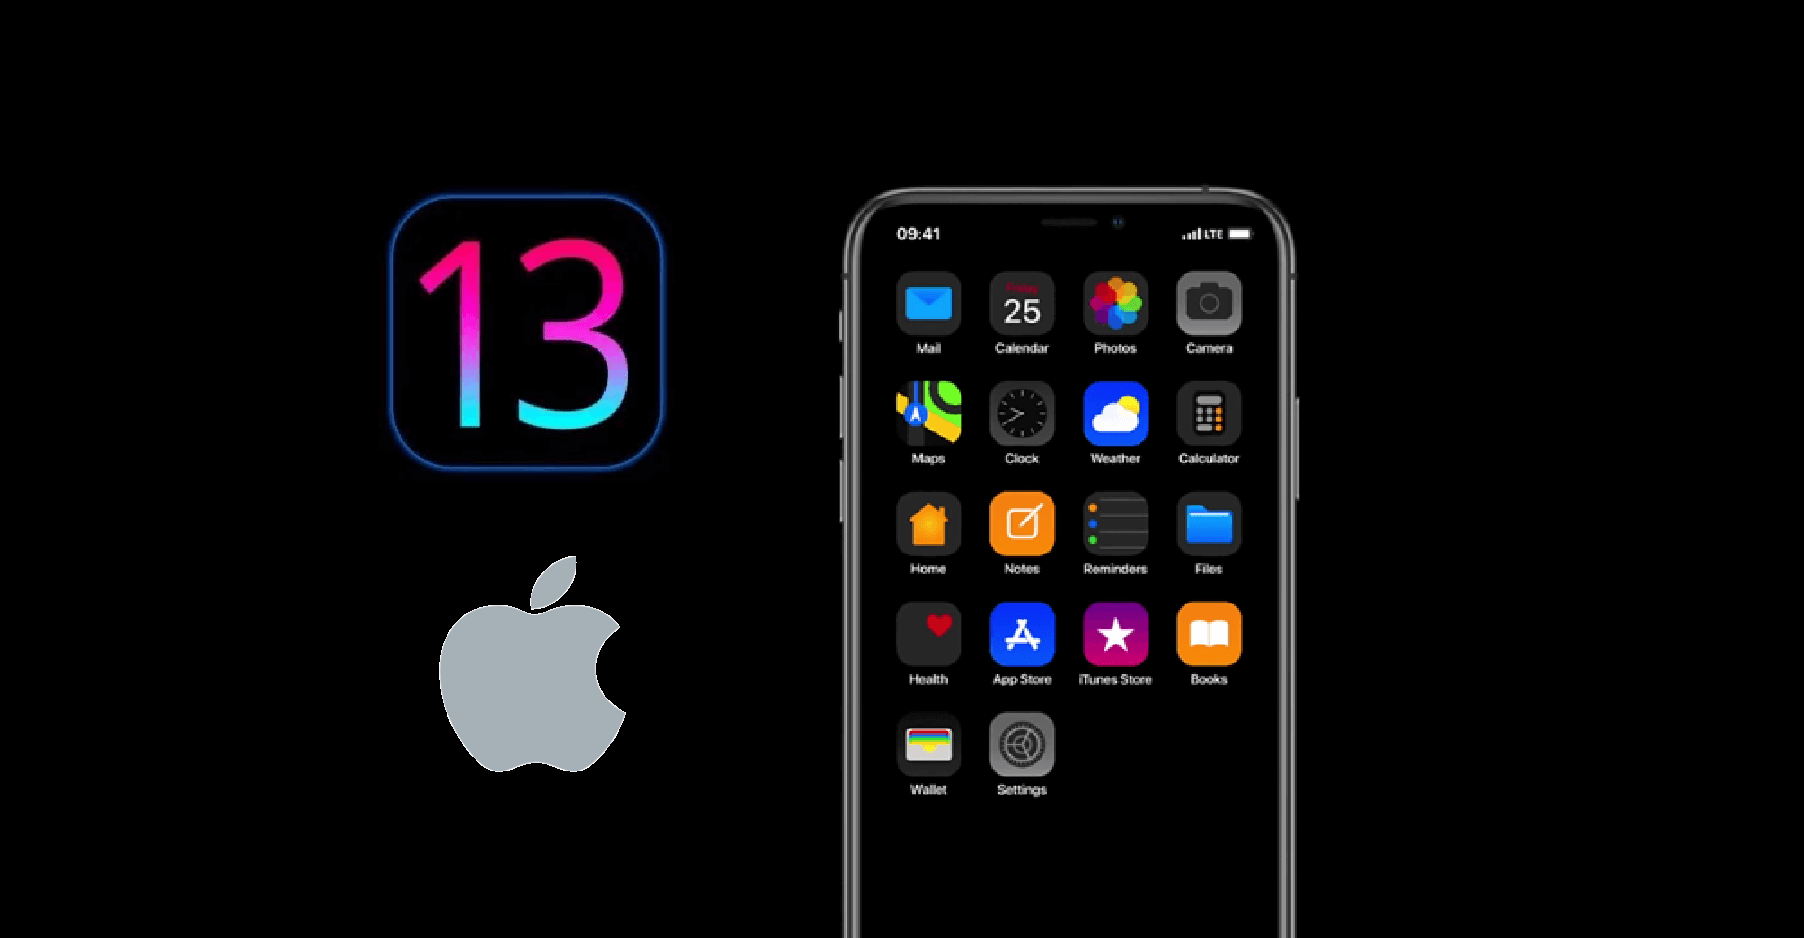 iOS 13.3.1 Release Date and OTA Schedule